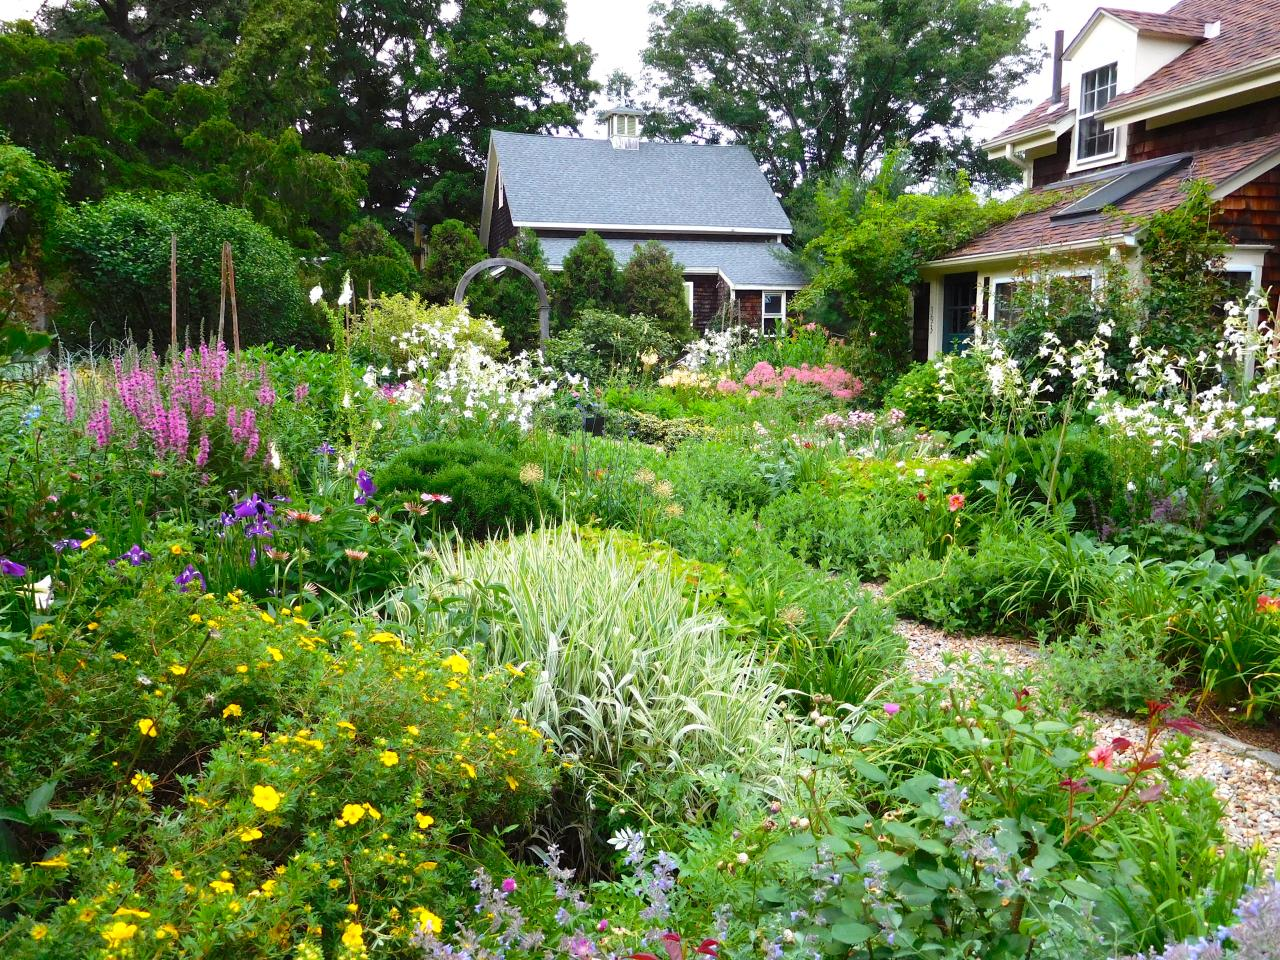 Cottage garden design ideas hgtv for Cottage garden plans designs